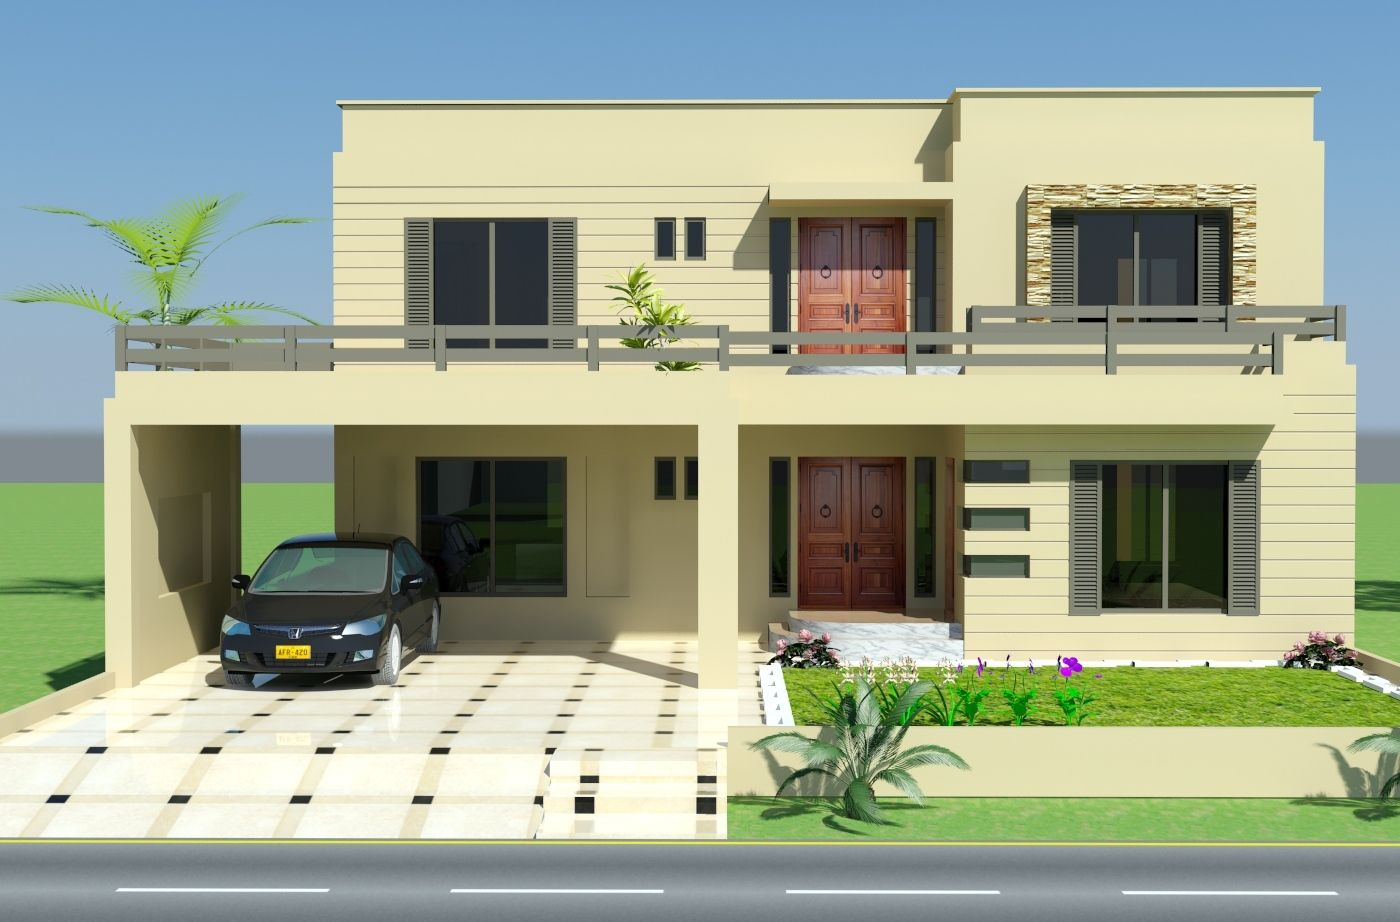 Exterior house design front elevation mi futura casa for External design house